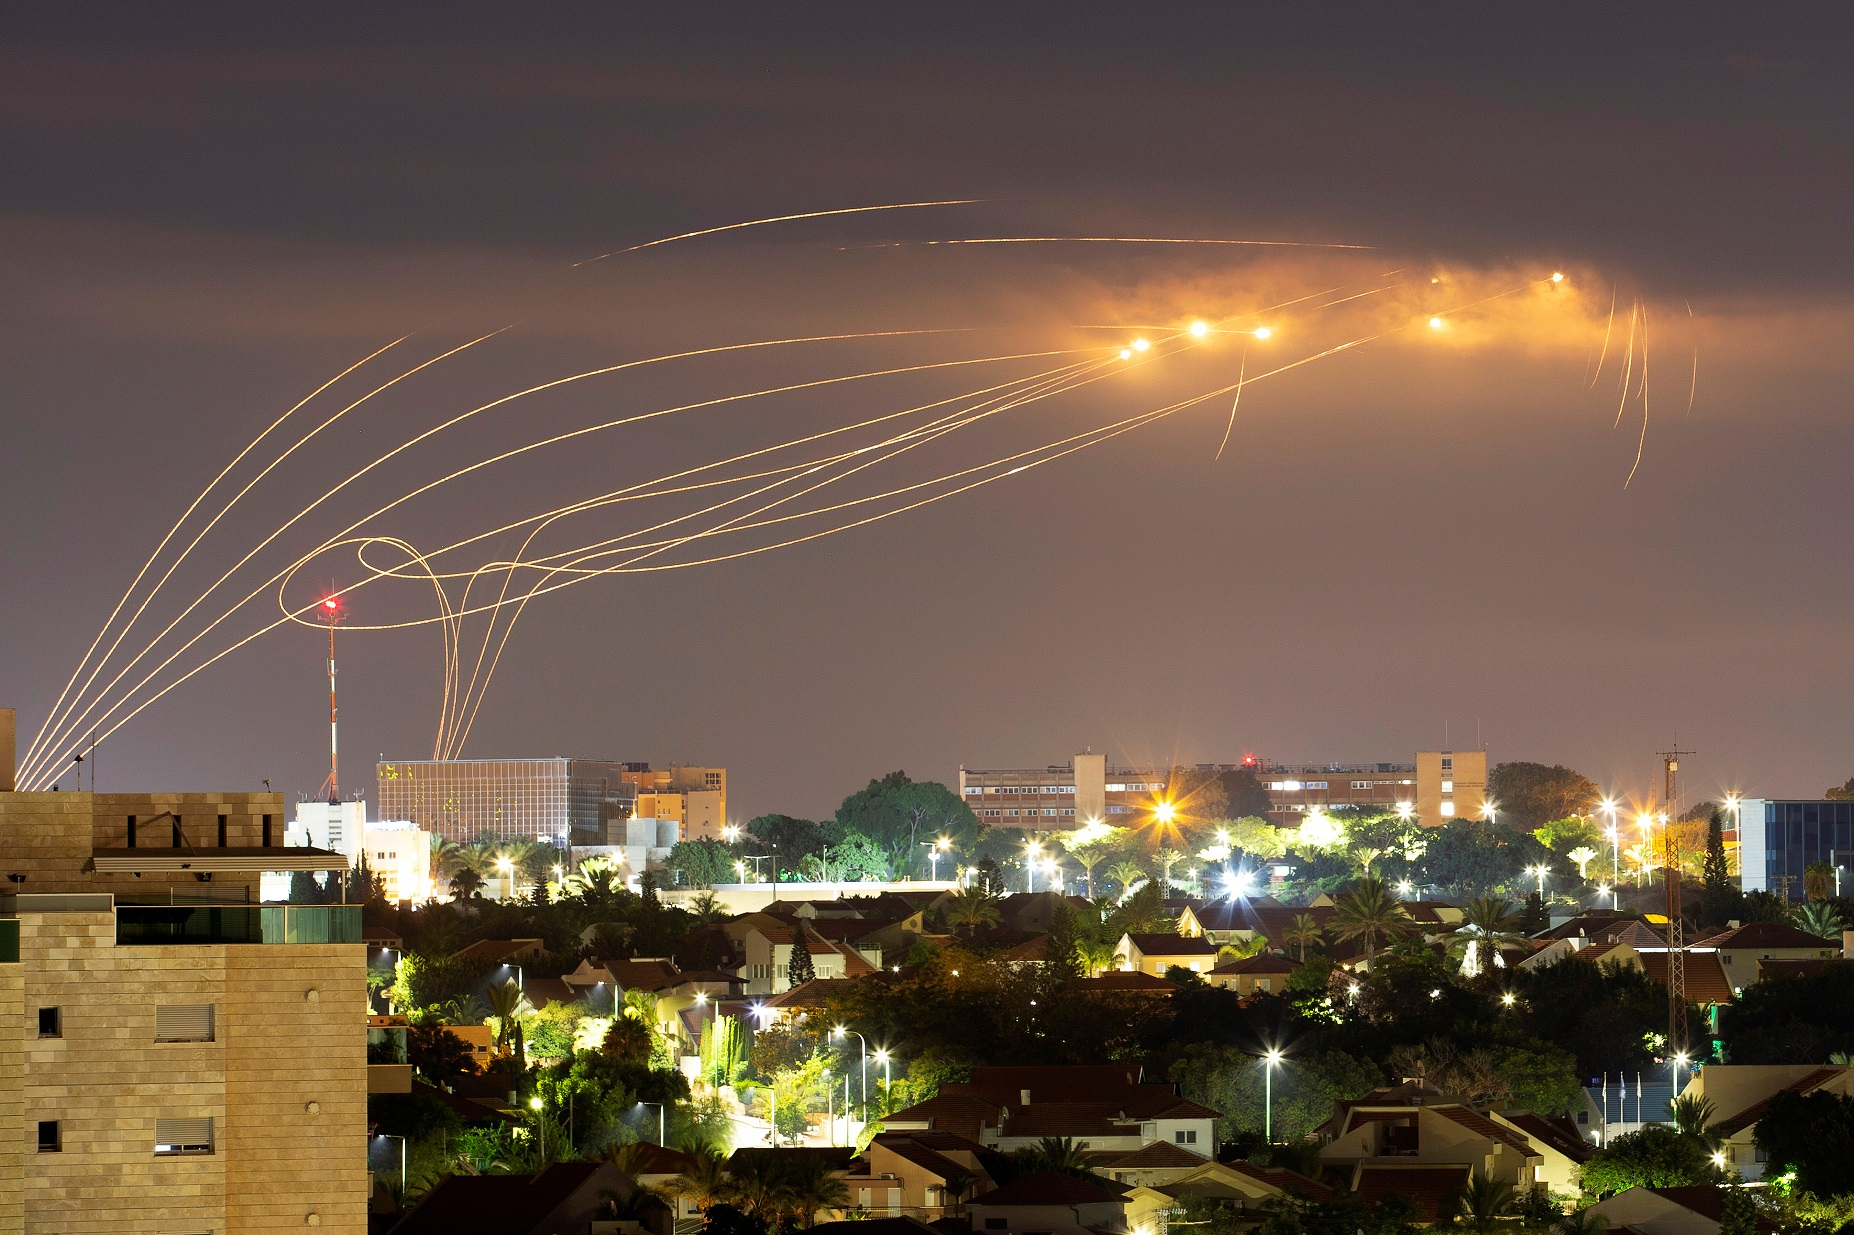 The Iron Dome anti-missile system fires interception missiles as rockets are launched from Gaza towards Israel, as seen from the city of Ashkelon, Israel, August 21, 2020. REUTERS/Amir Cohen